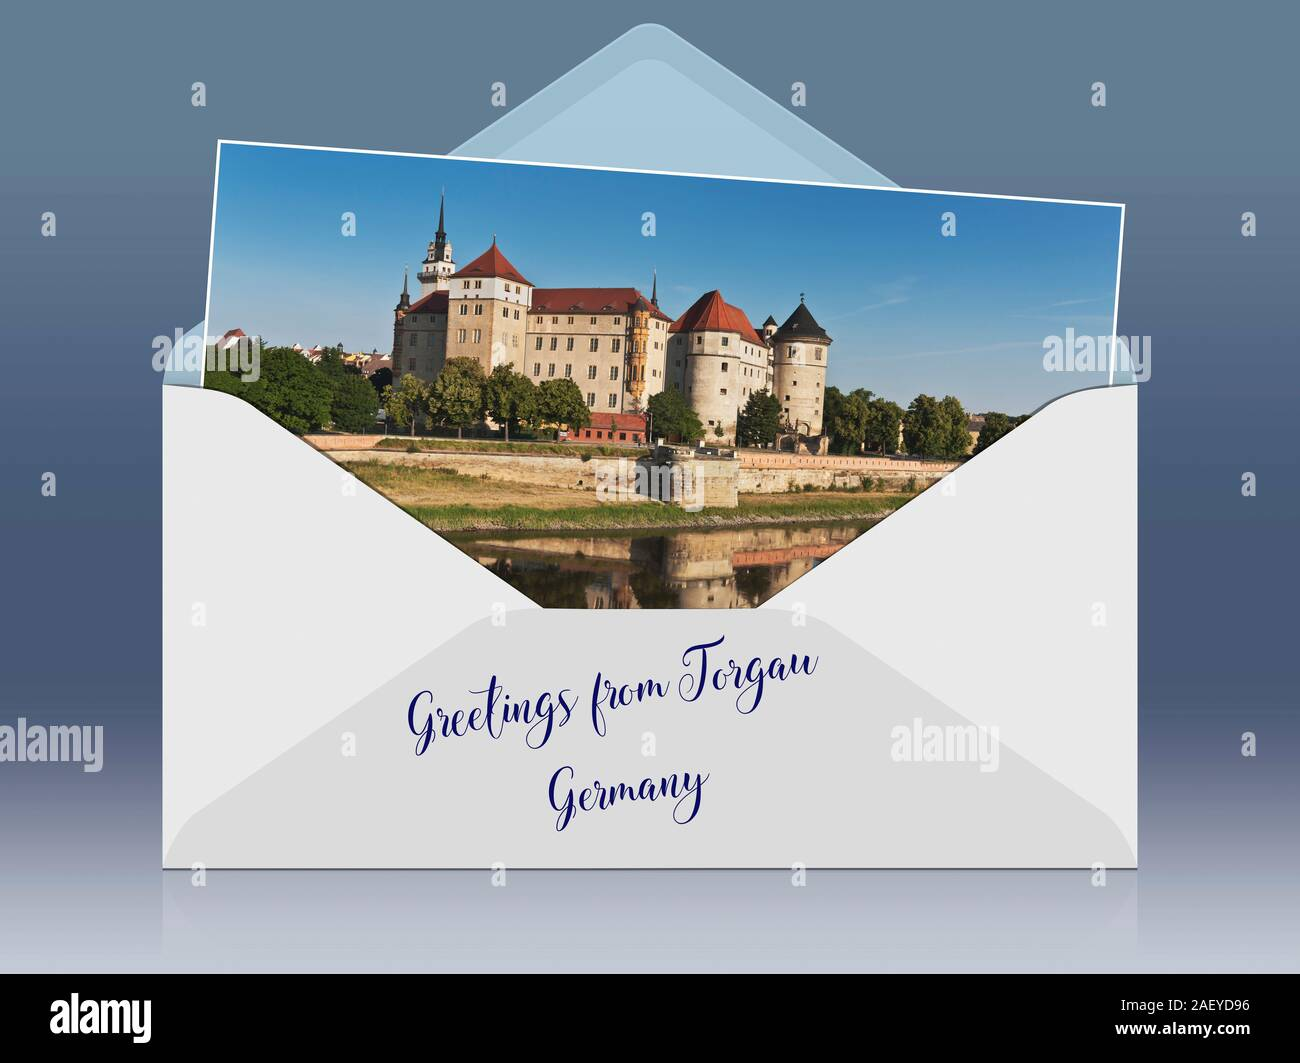 View over the Elbe river to Hartenfels Castle, Torgau, administrative district Northern Saxony, Saxony, Germany, Europe Stock Photo